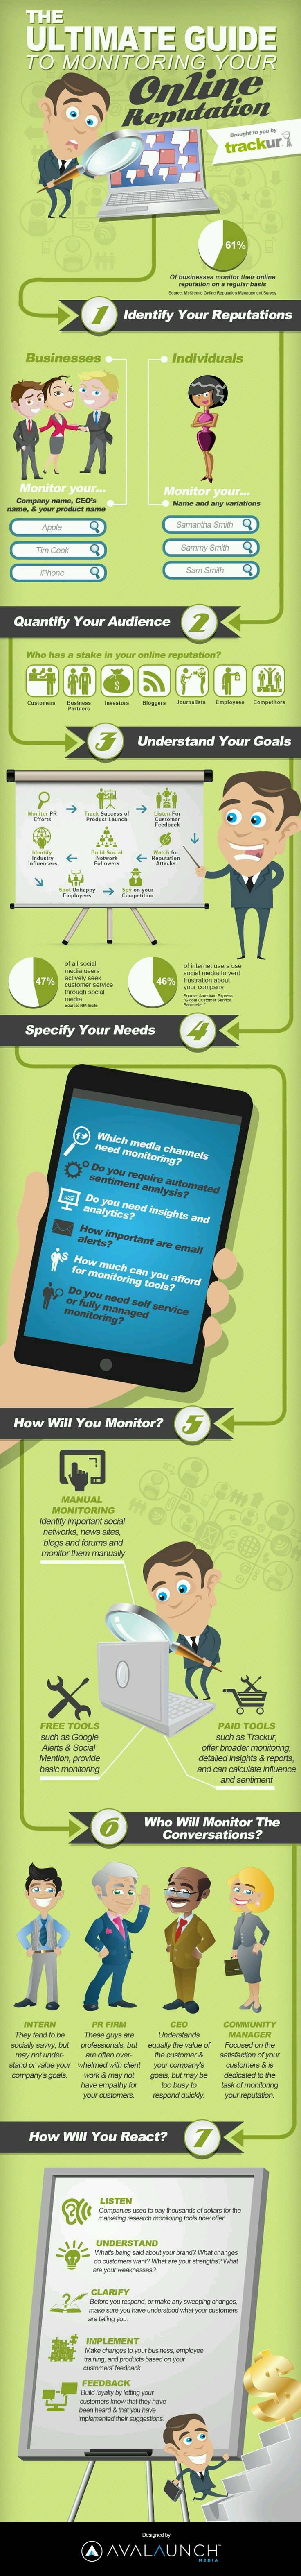 The ultimate guide to monitoring your online reputation #Infographic